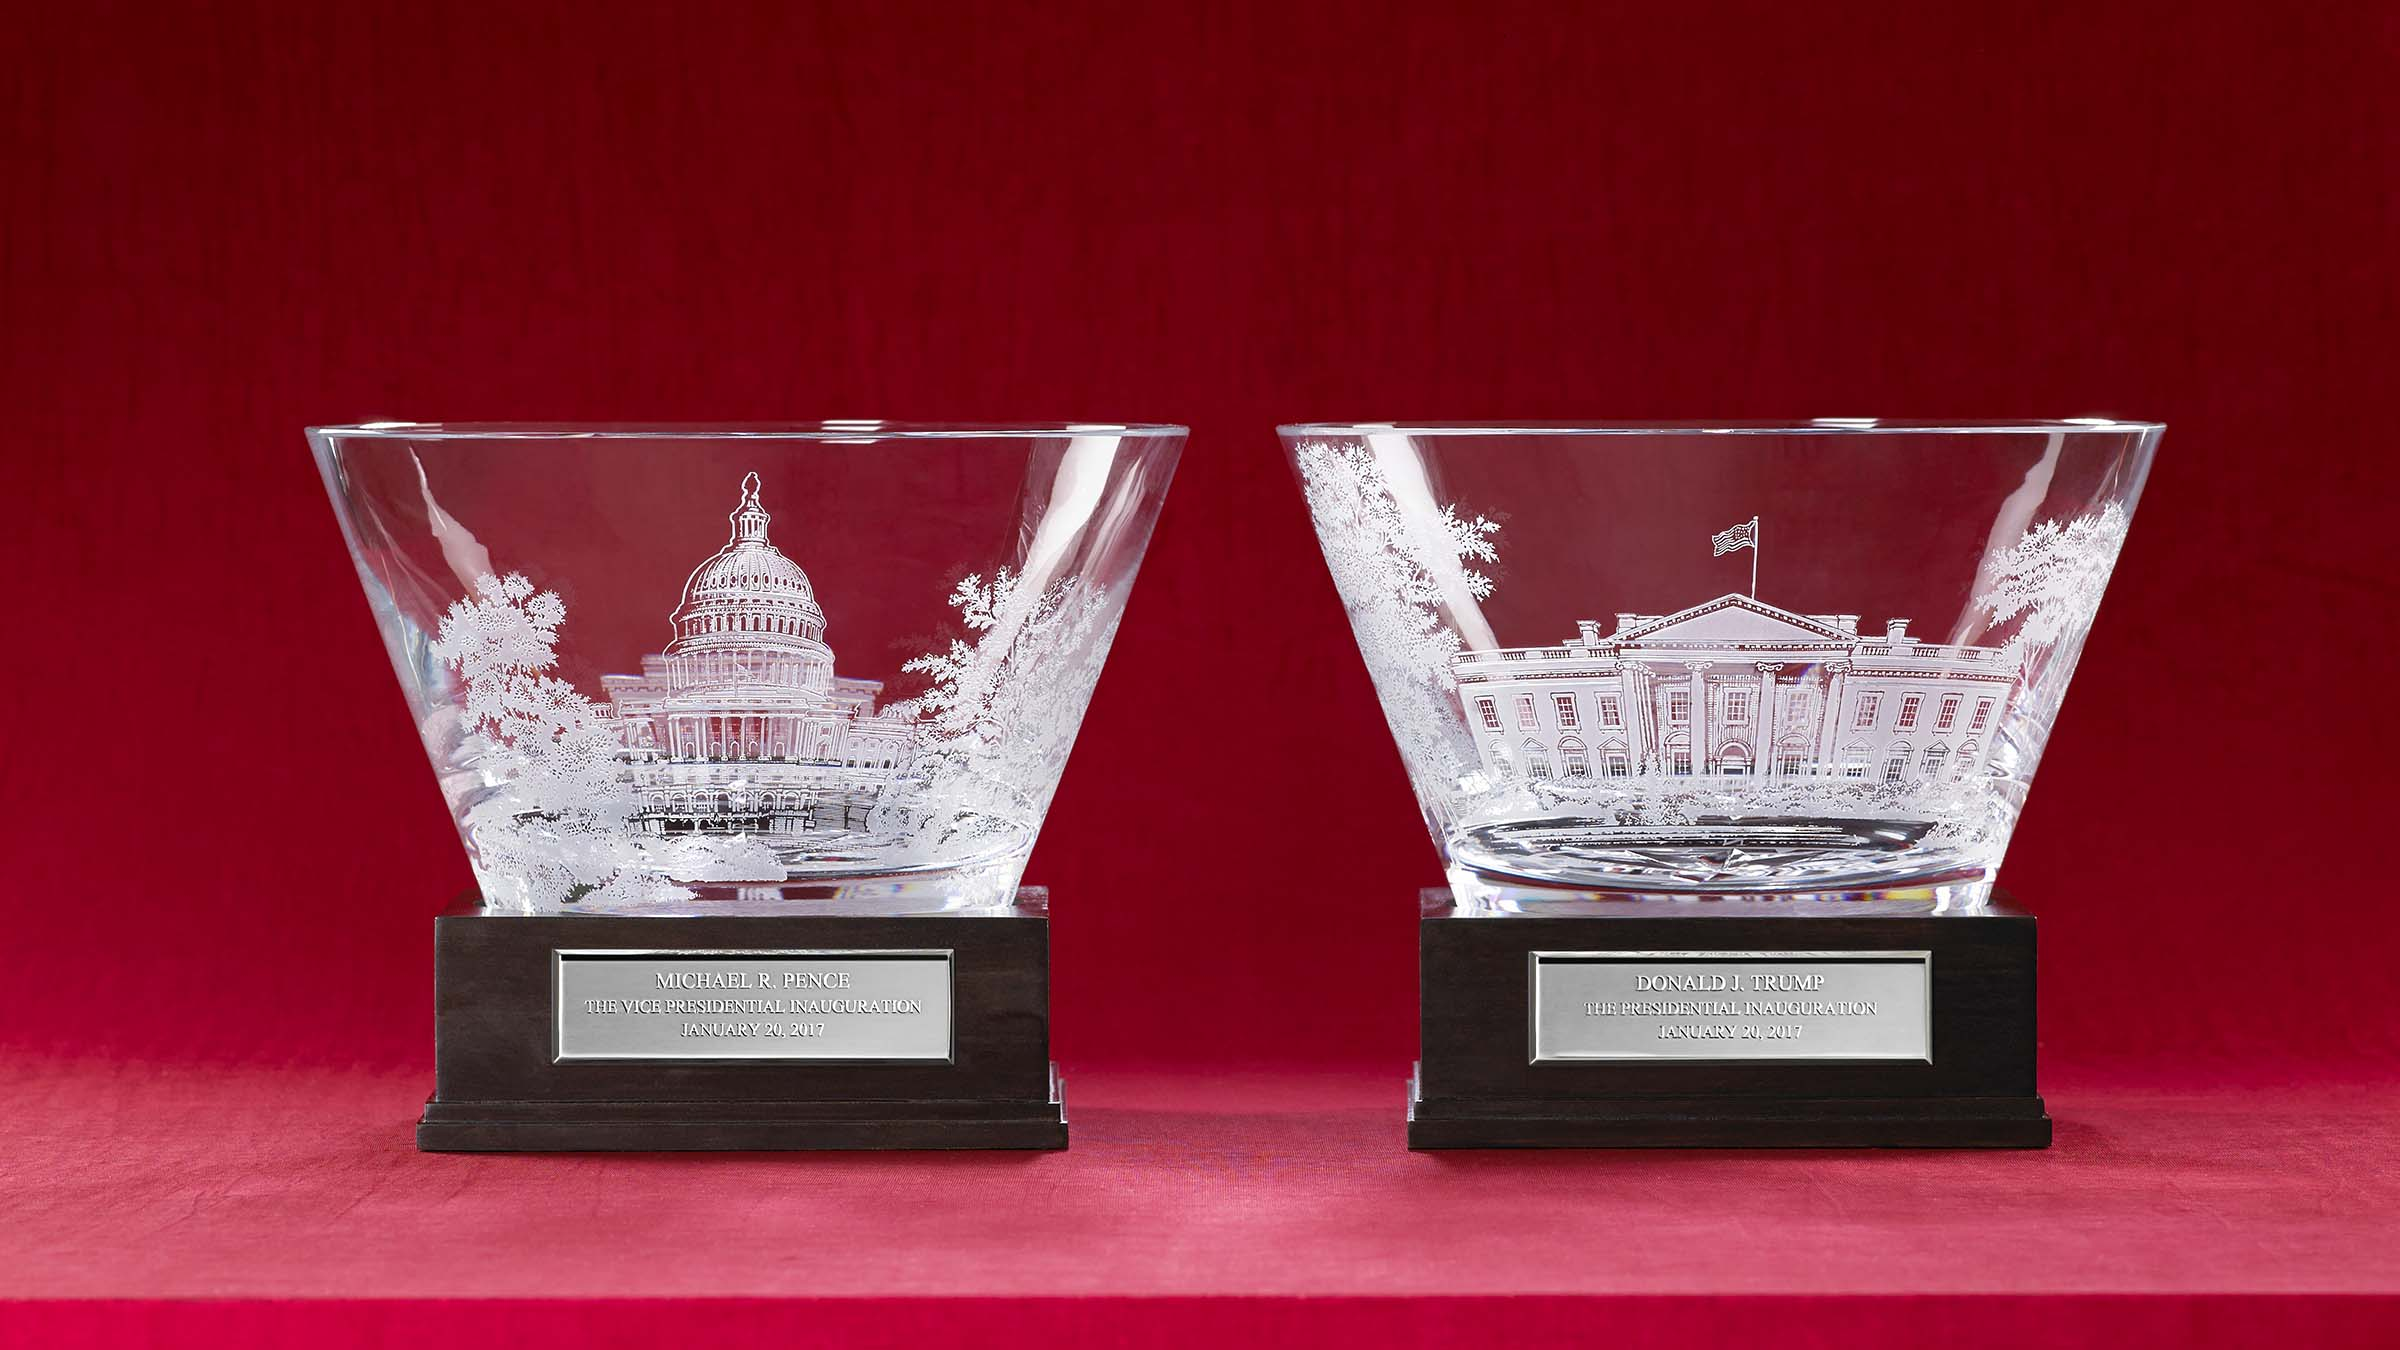 Trump and Pence's crystal bowls are the most elaborate inauguration gifts Lenox has made to date.